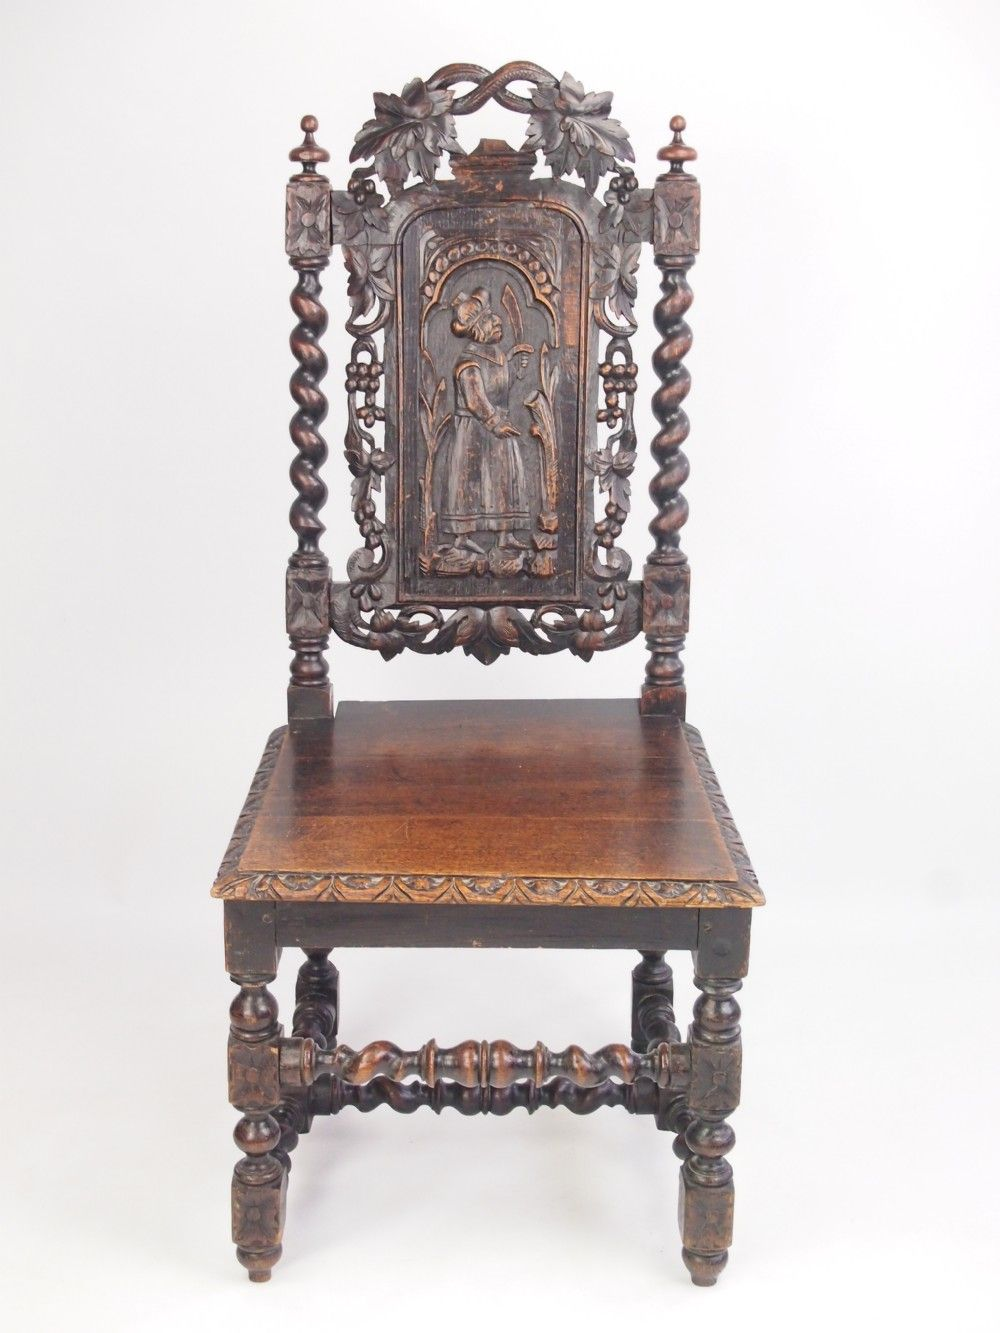 Antique Gothic Chairs - Antique Gothic Chairs Antique Furniture